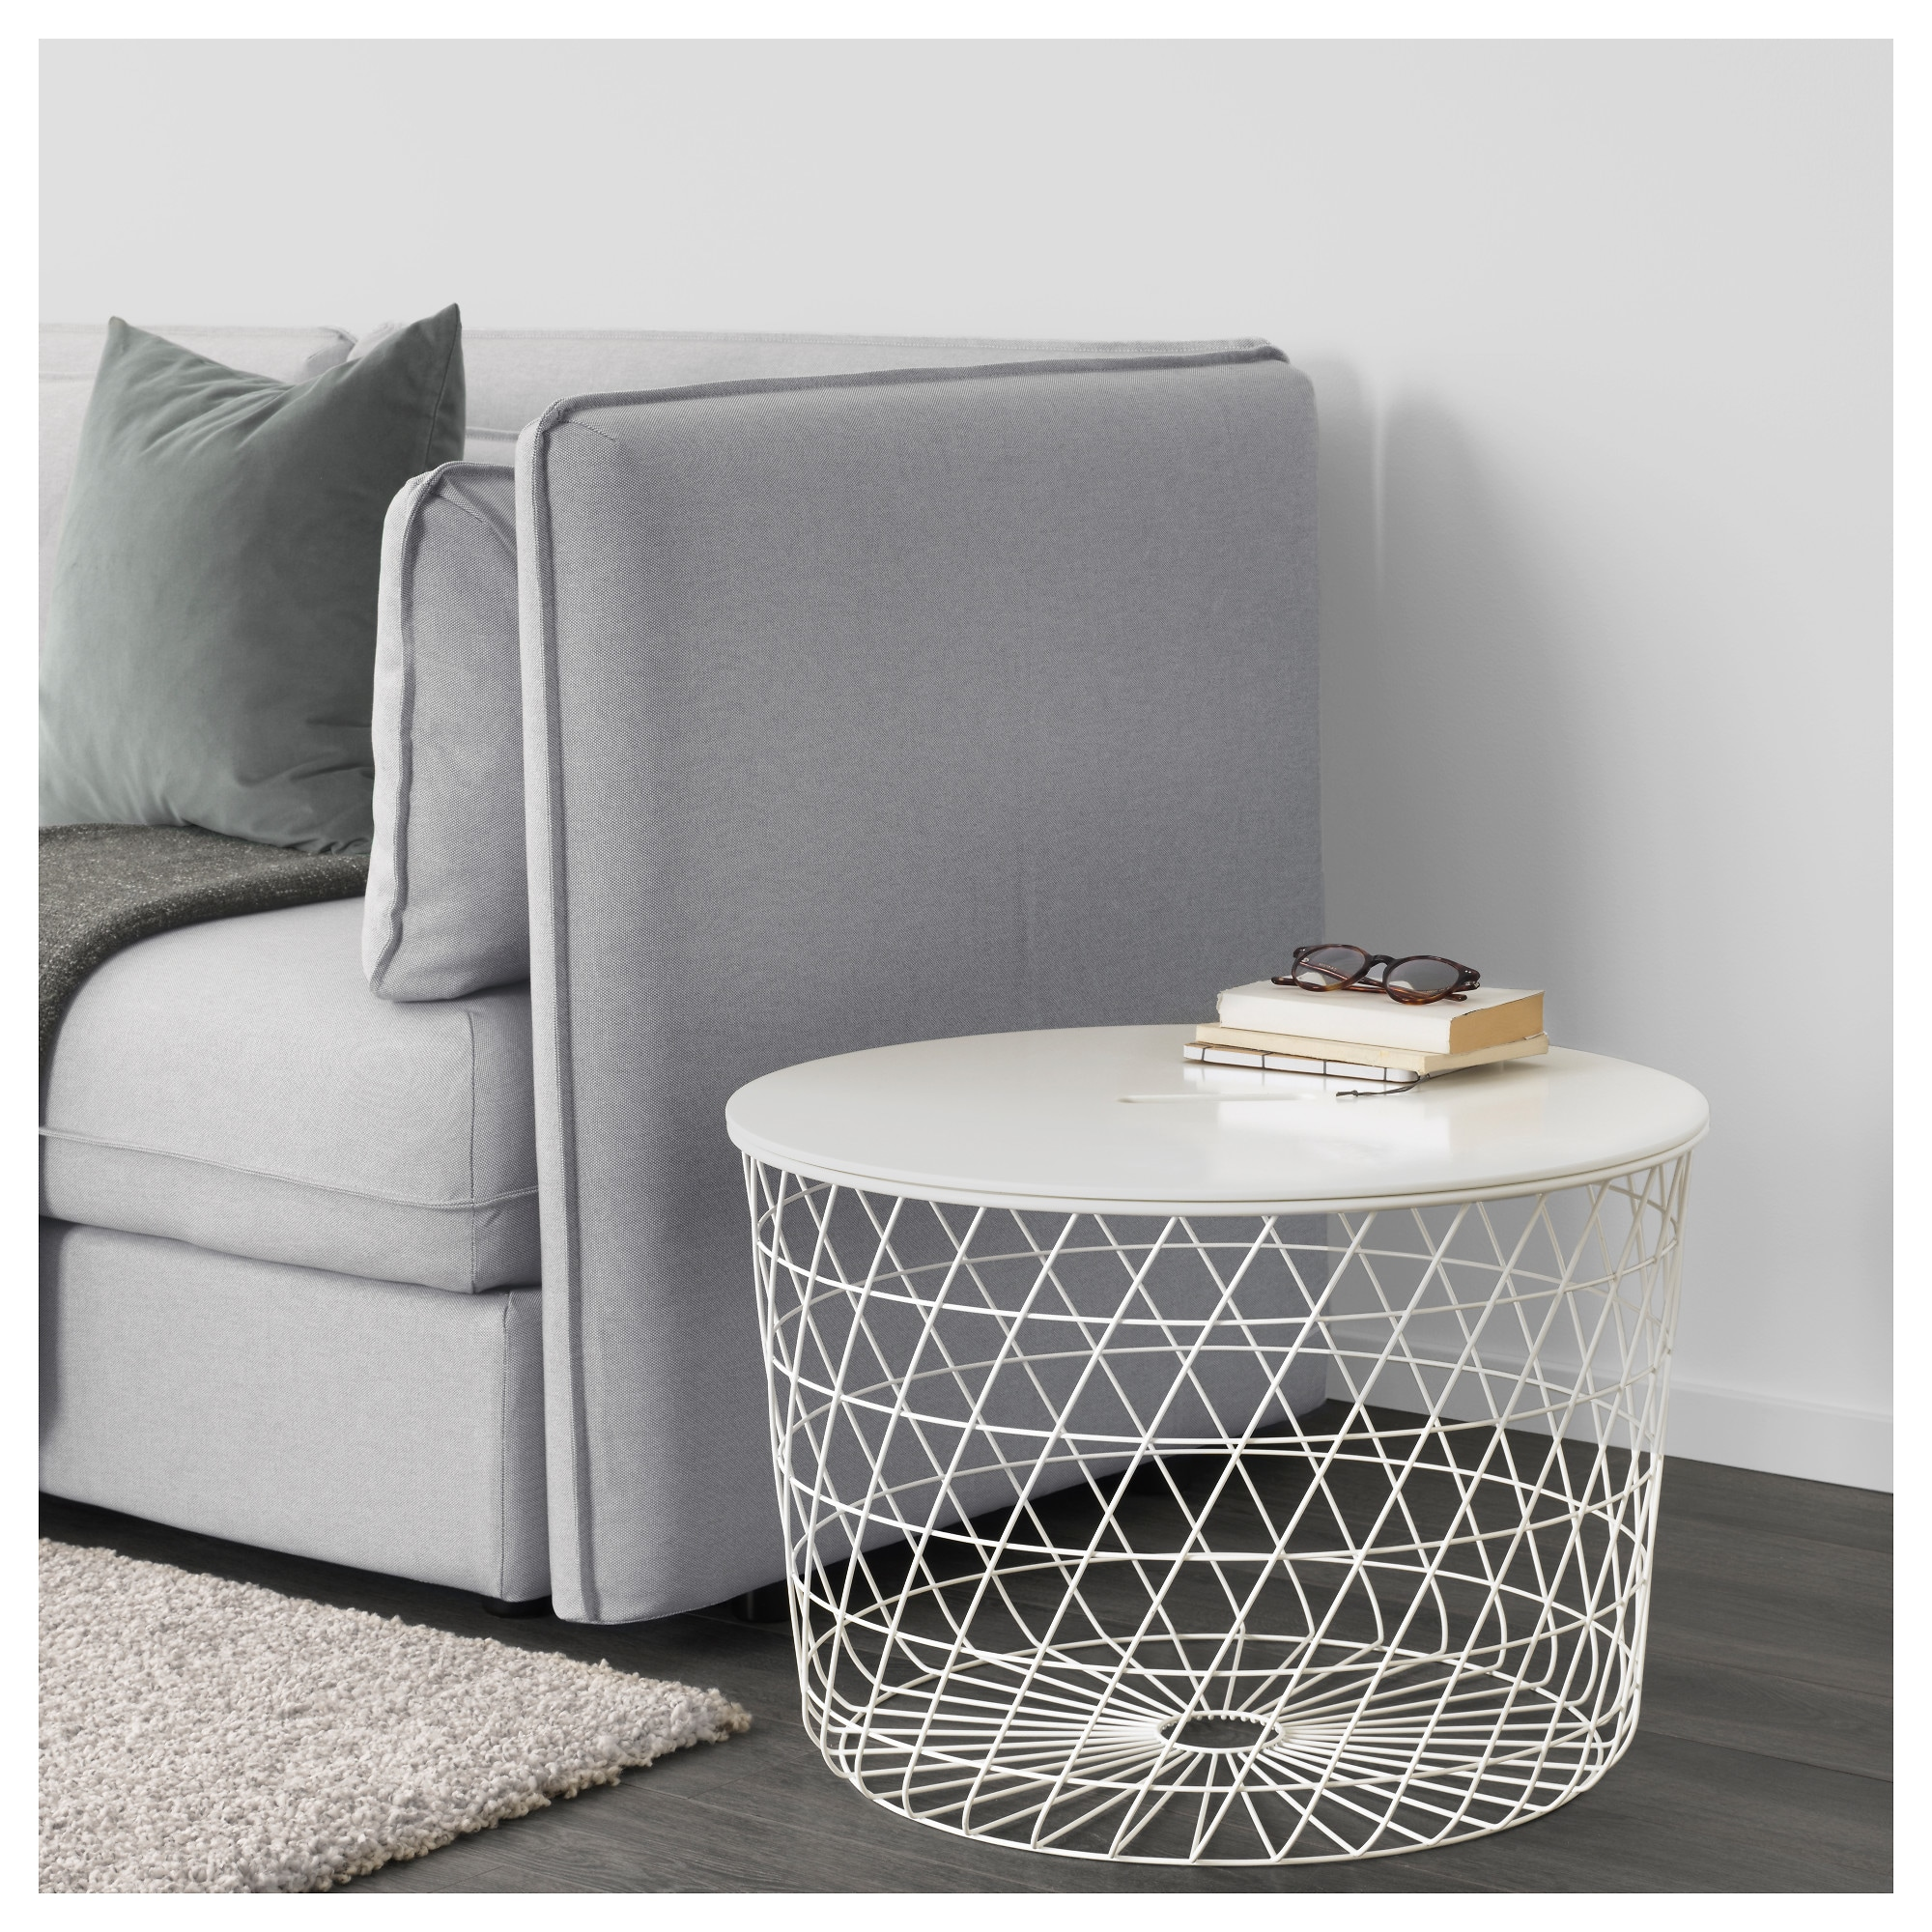 kvistbro storage table ikea wire basket accent with power strip office end patio seating unfinished wood sofa outdoor side tables home garden hardwood wooden bedside cabinets